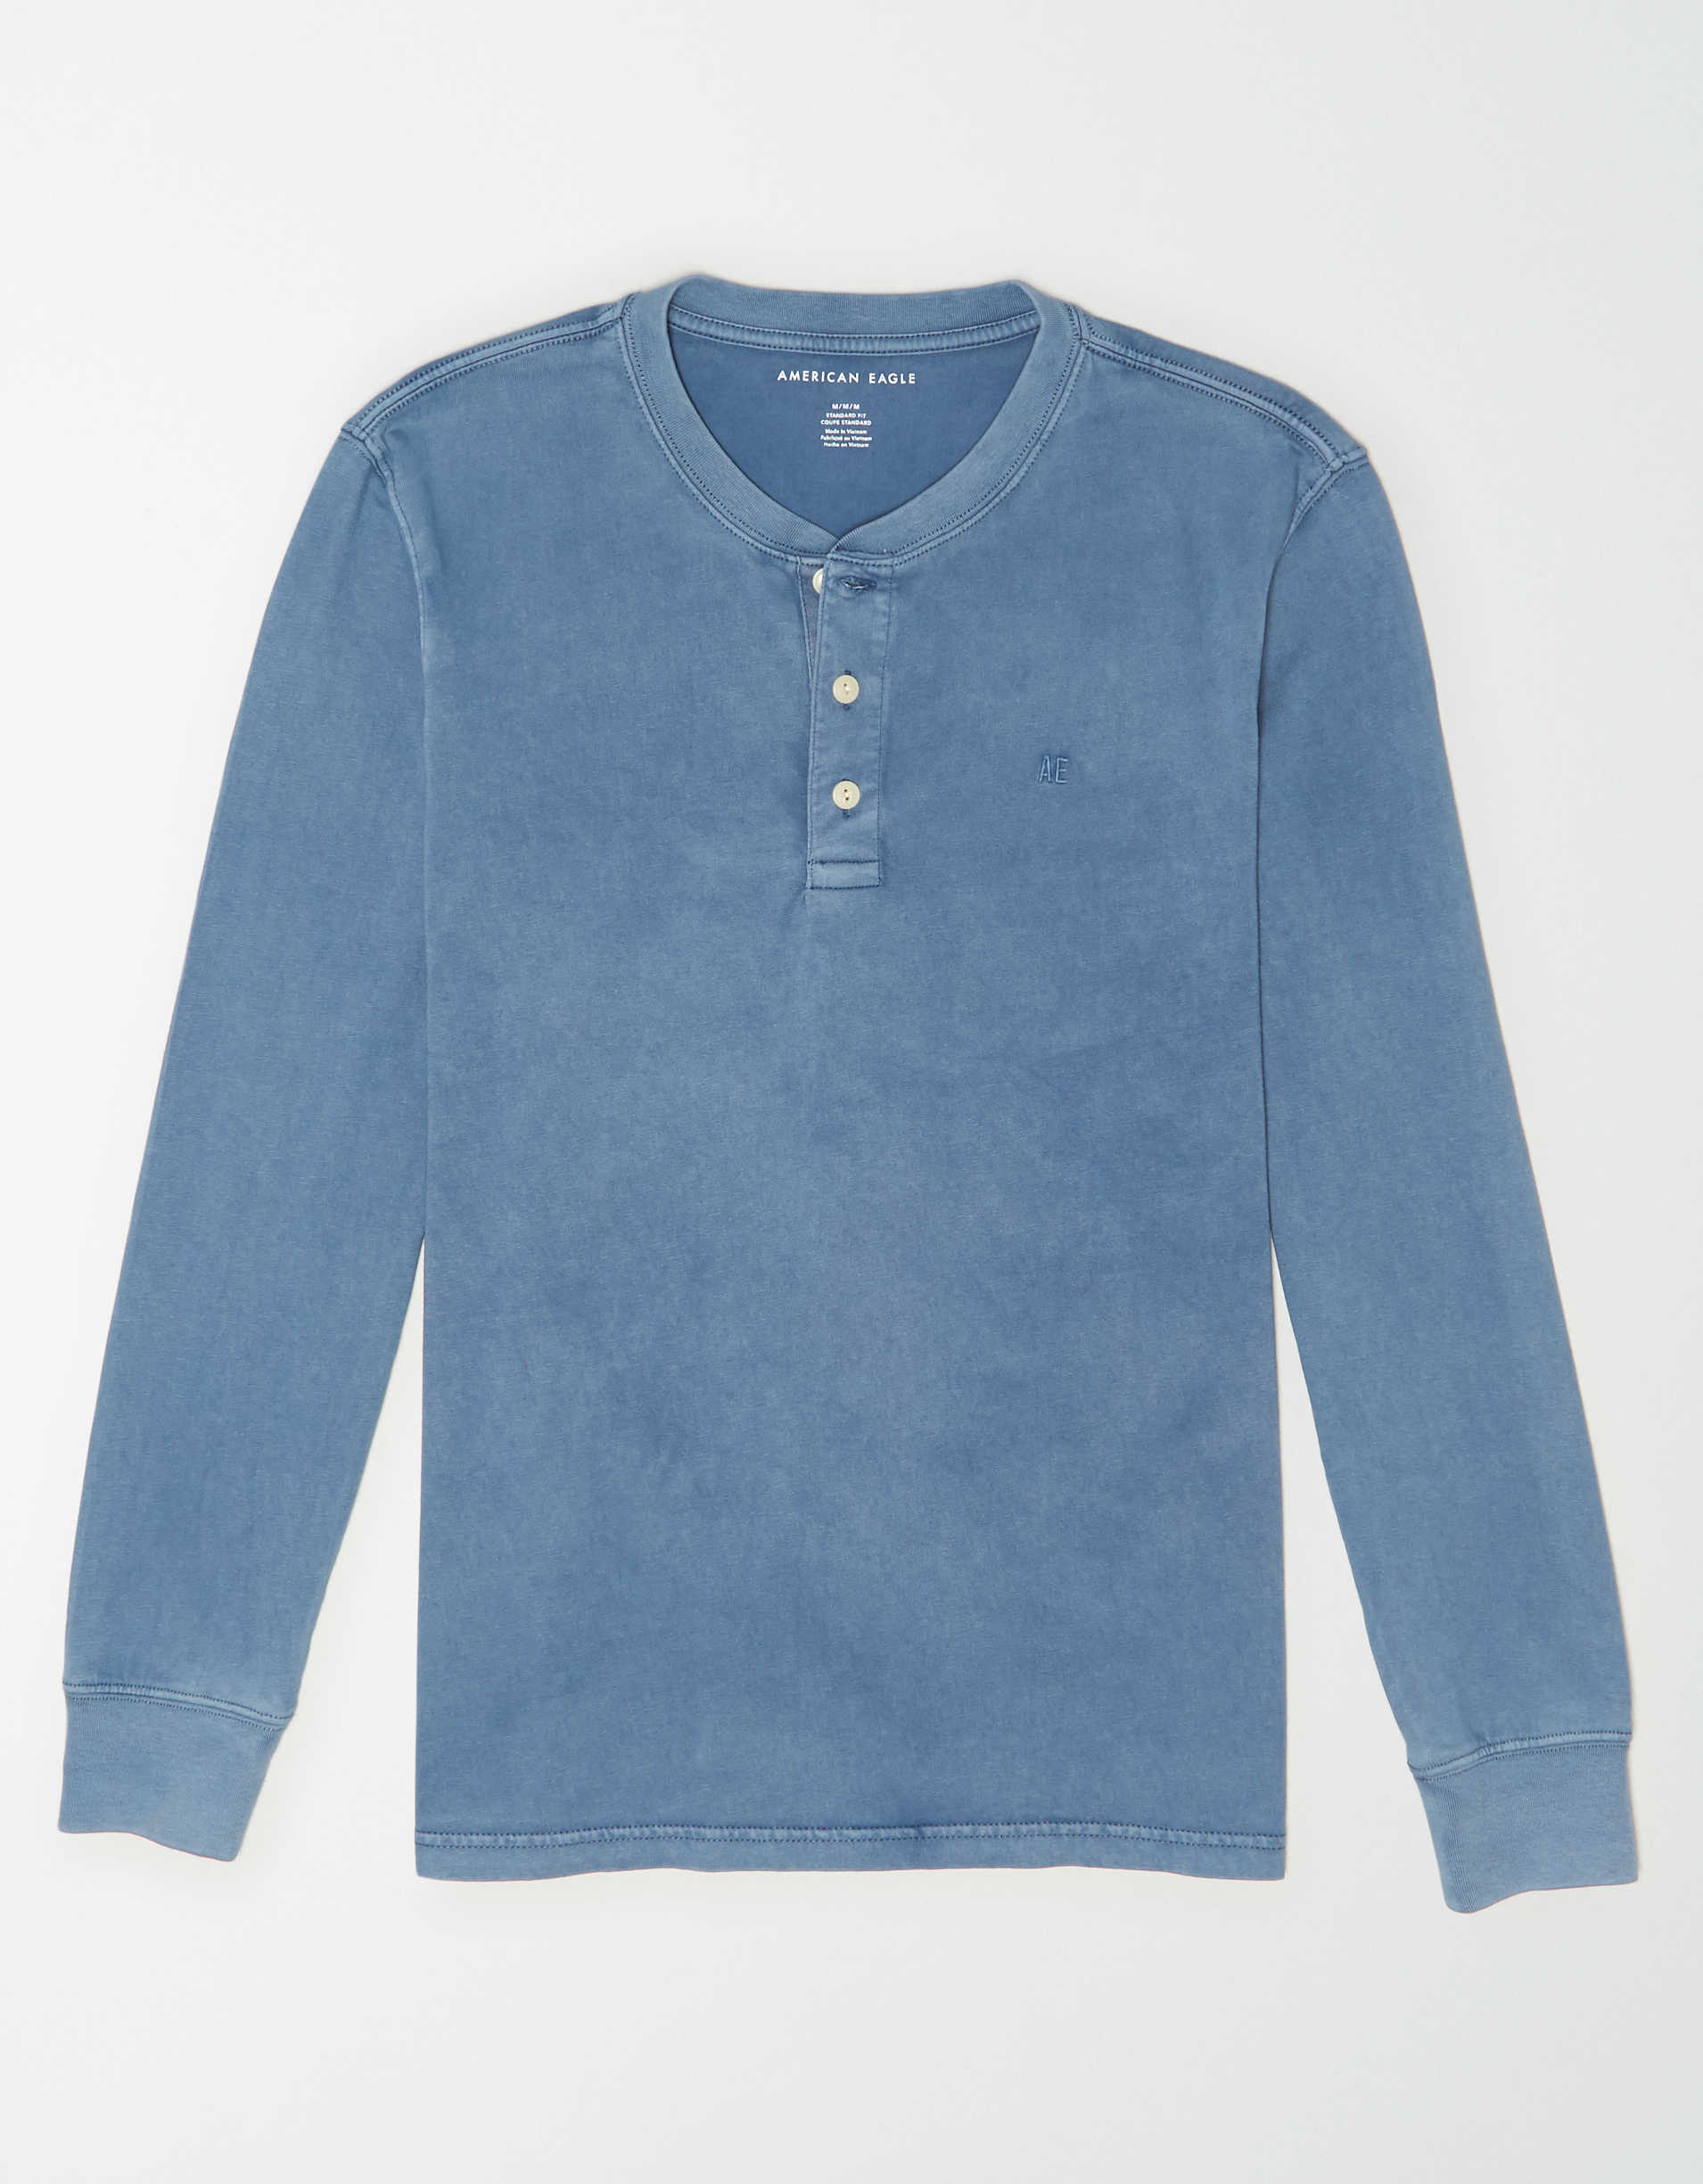 AE Super Soft Icon Long-Sleeve Henley Shirt